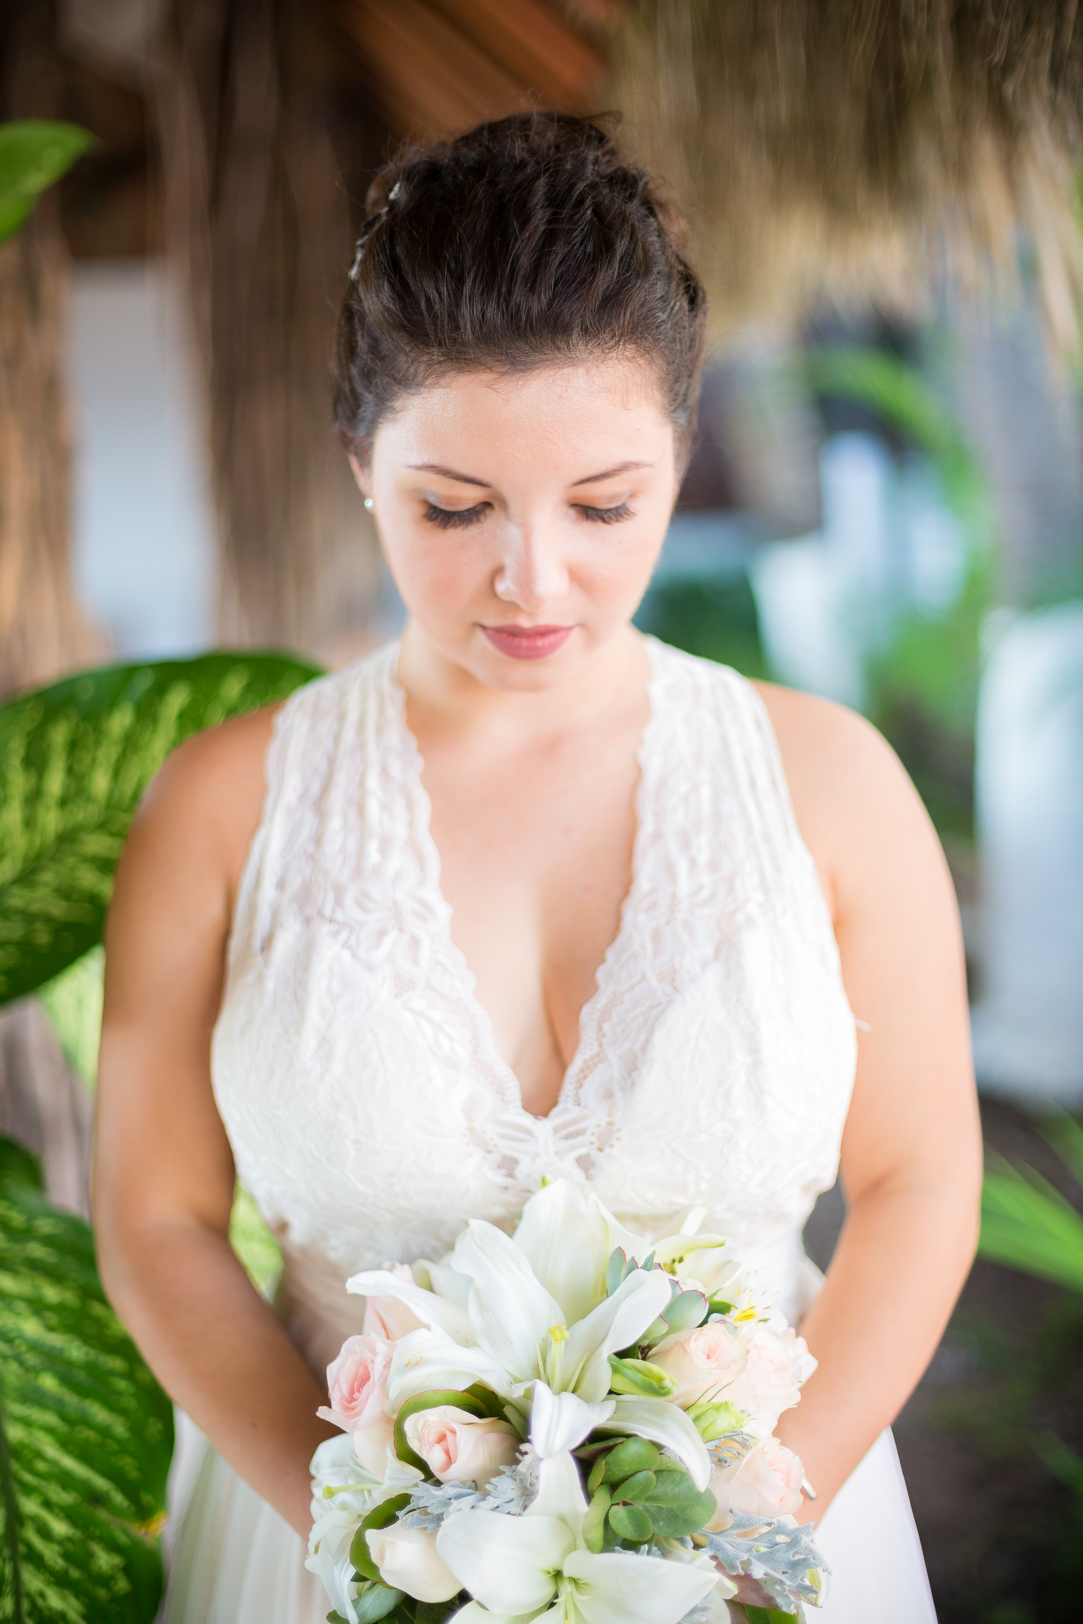 Bride with flowers at Sunscape Dorado Pacifico Ixtapa destination wedding